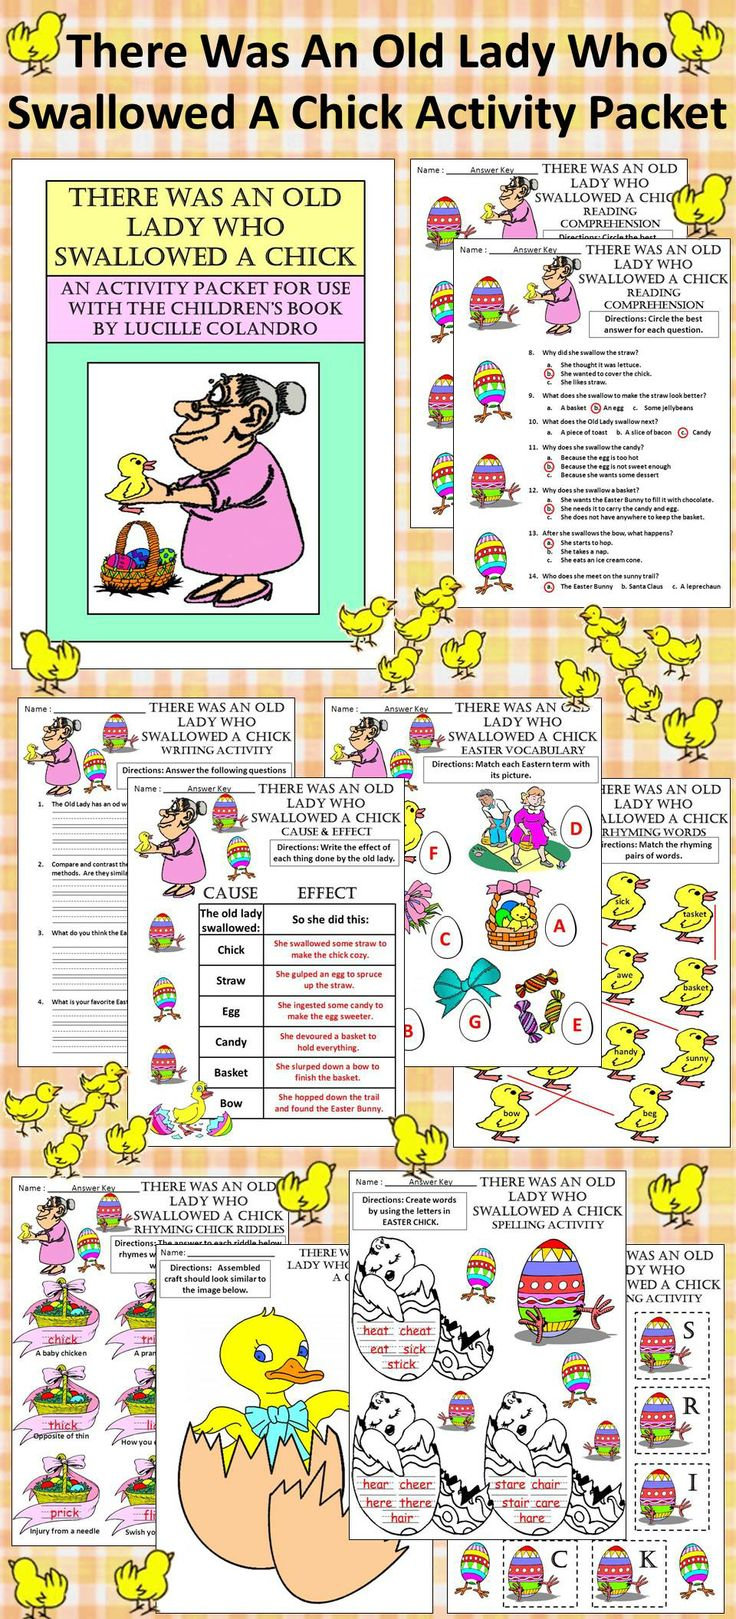 There was an Old Lady Who Swallowed a Chick Easter Activity Packet: This colorful activity packet complements the children's book, There Was an Old Lady Who Swallowed a Chick, by Lucille Colandro.  Contents include: * Reading Comprehension Quiz * Rhyming Words Matching Worksheet * Rhyming Word Riddle Worksheet * Vocabulary Worksheet * Writing Activity * Cause and Effect Worksheet * Easter Chick Spelling Activity & Spelling Cards * Coloring Sheets * Hatching Easter Chick Craft * Answer Keys